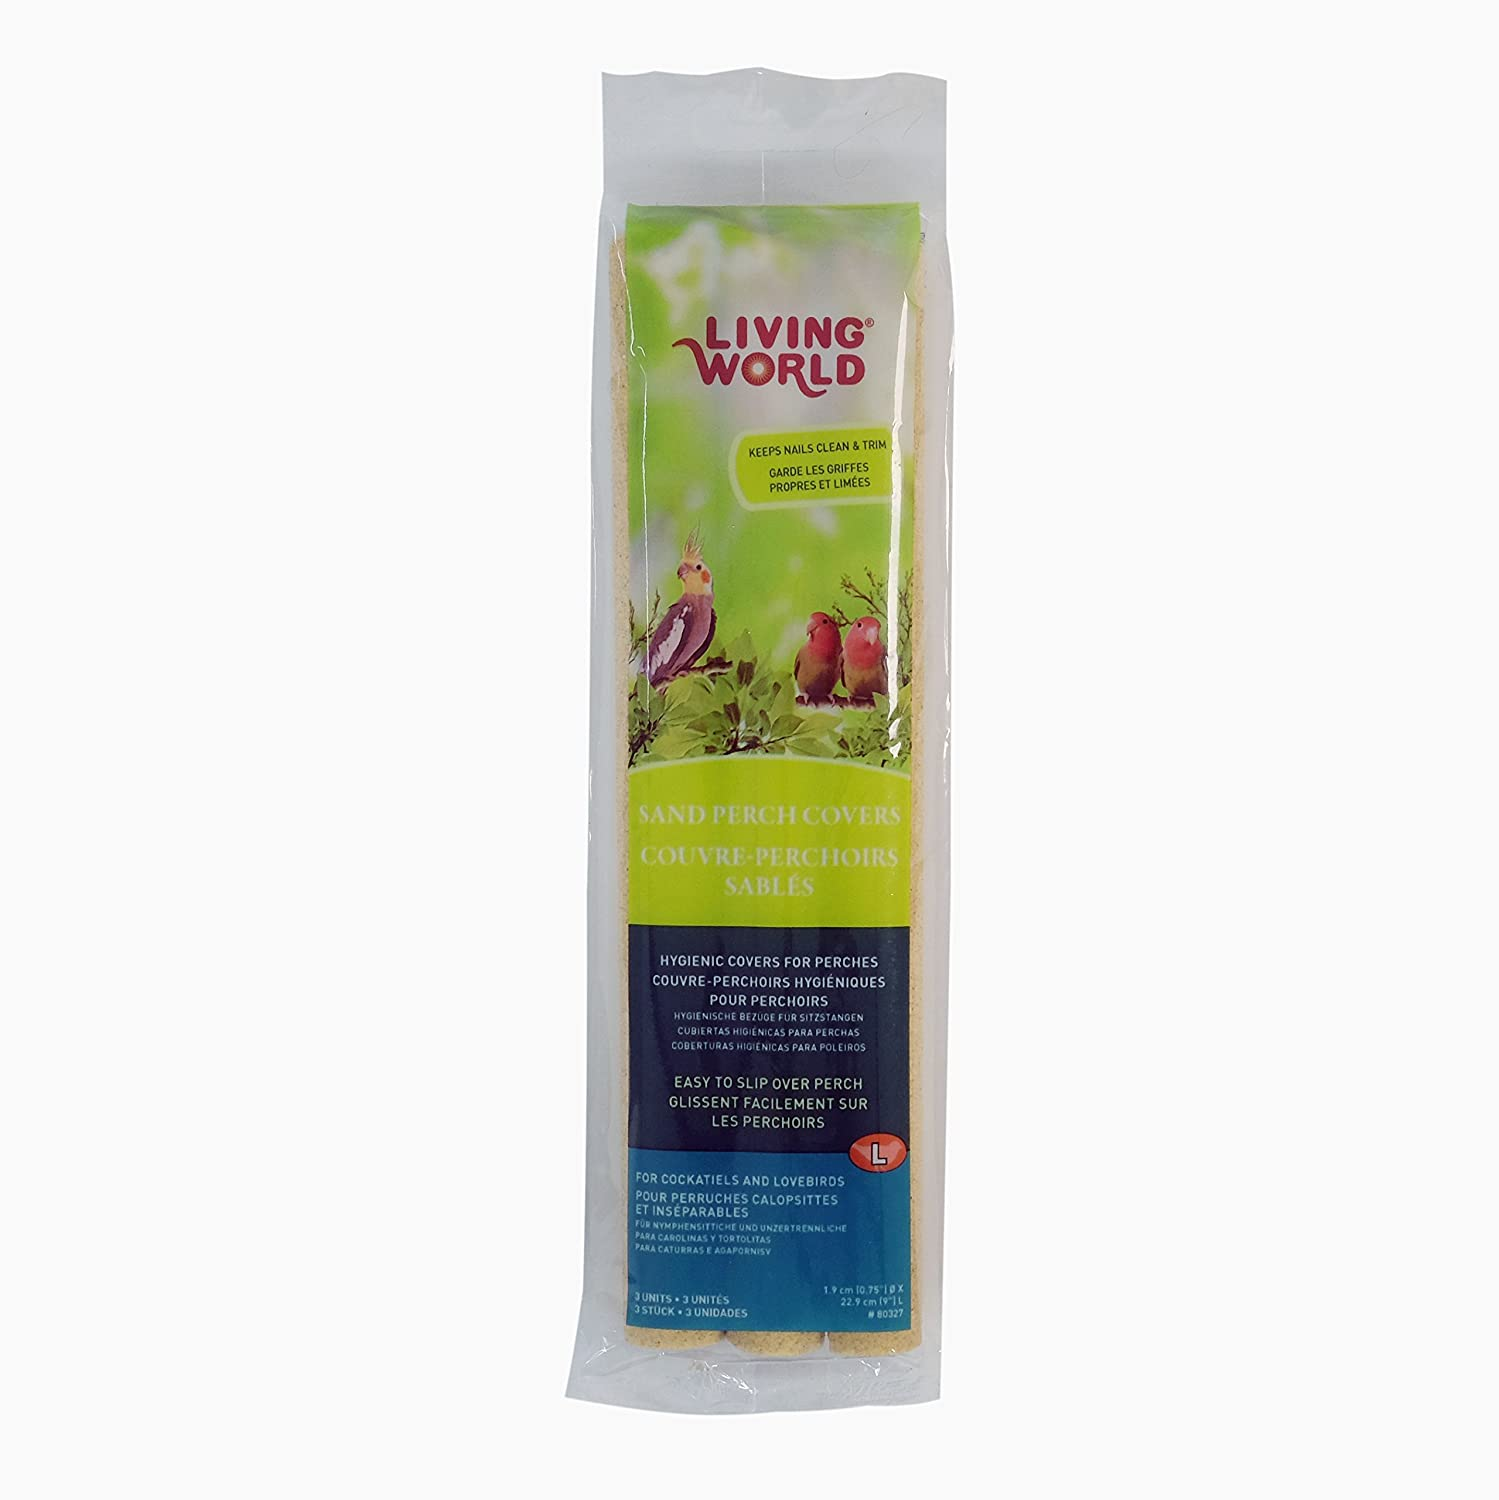 Living World Sand Perch Covers for Cockatiels 3 Pack